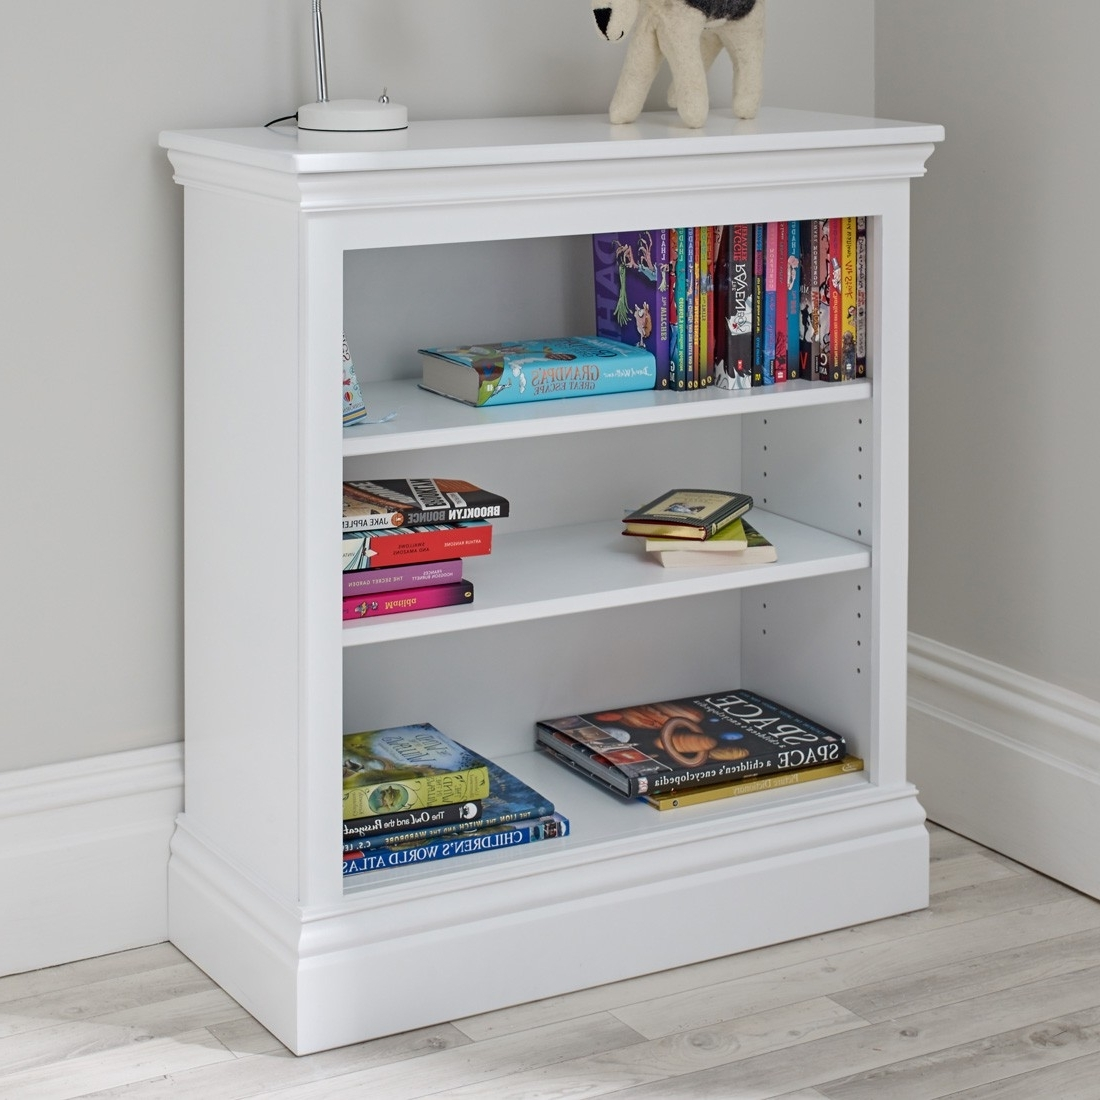 bookshelves images bookshelf white small bookcase